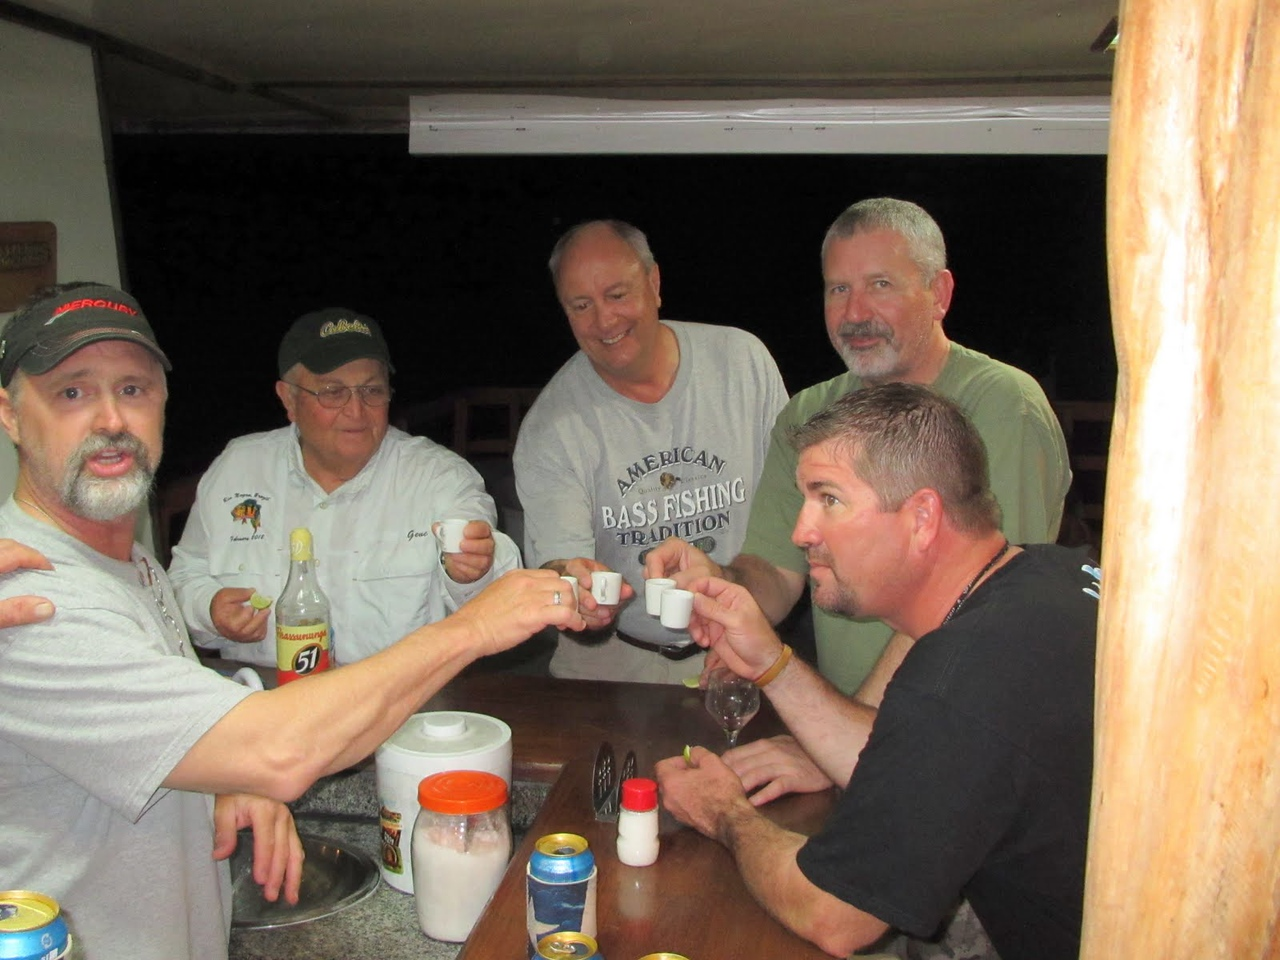 Some of the guys toasting a successful last day